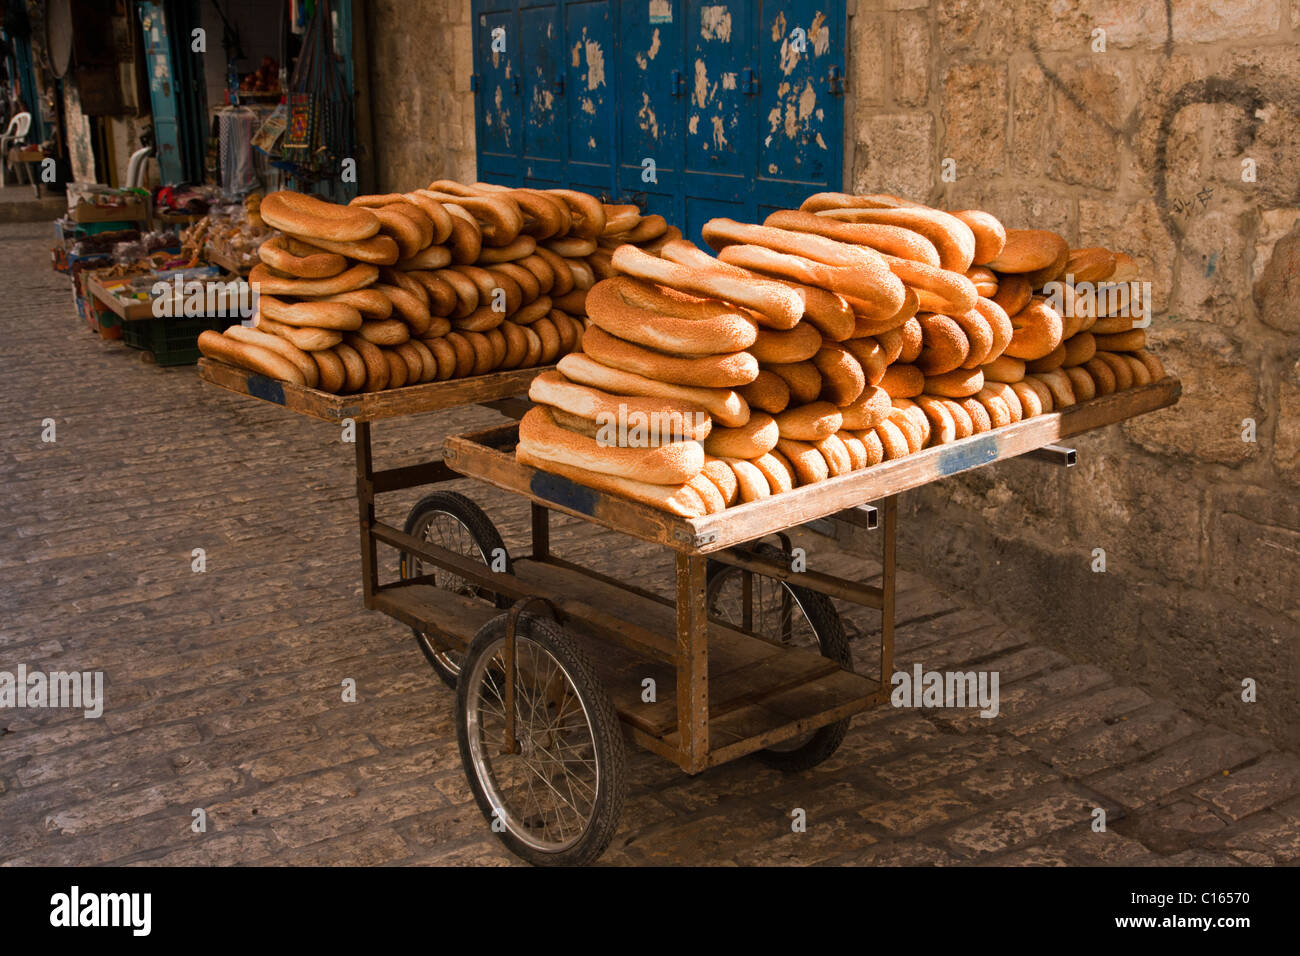 Cart of bread in the streets of Old Jerusalem. - Stock Image